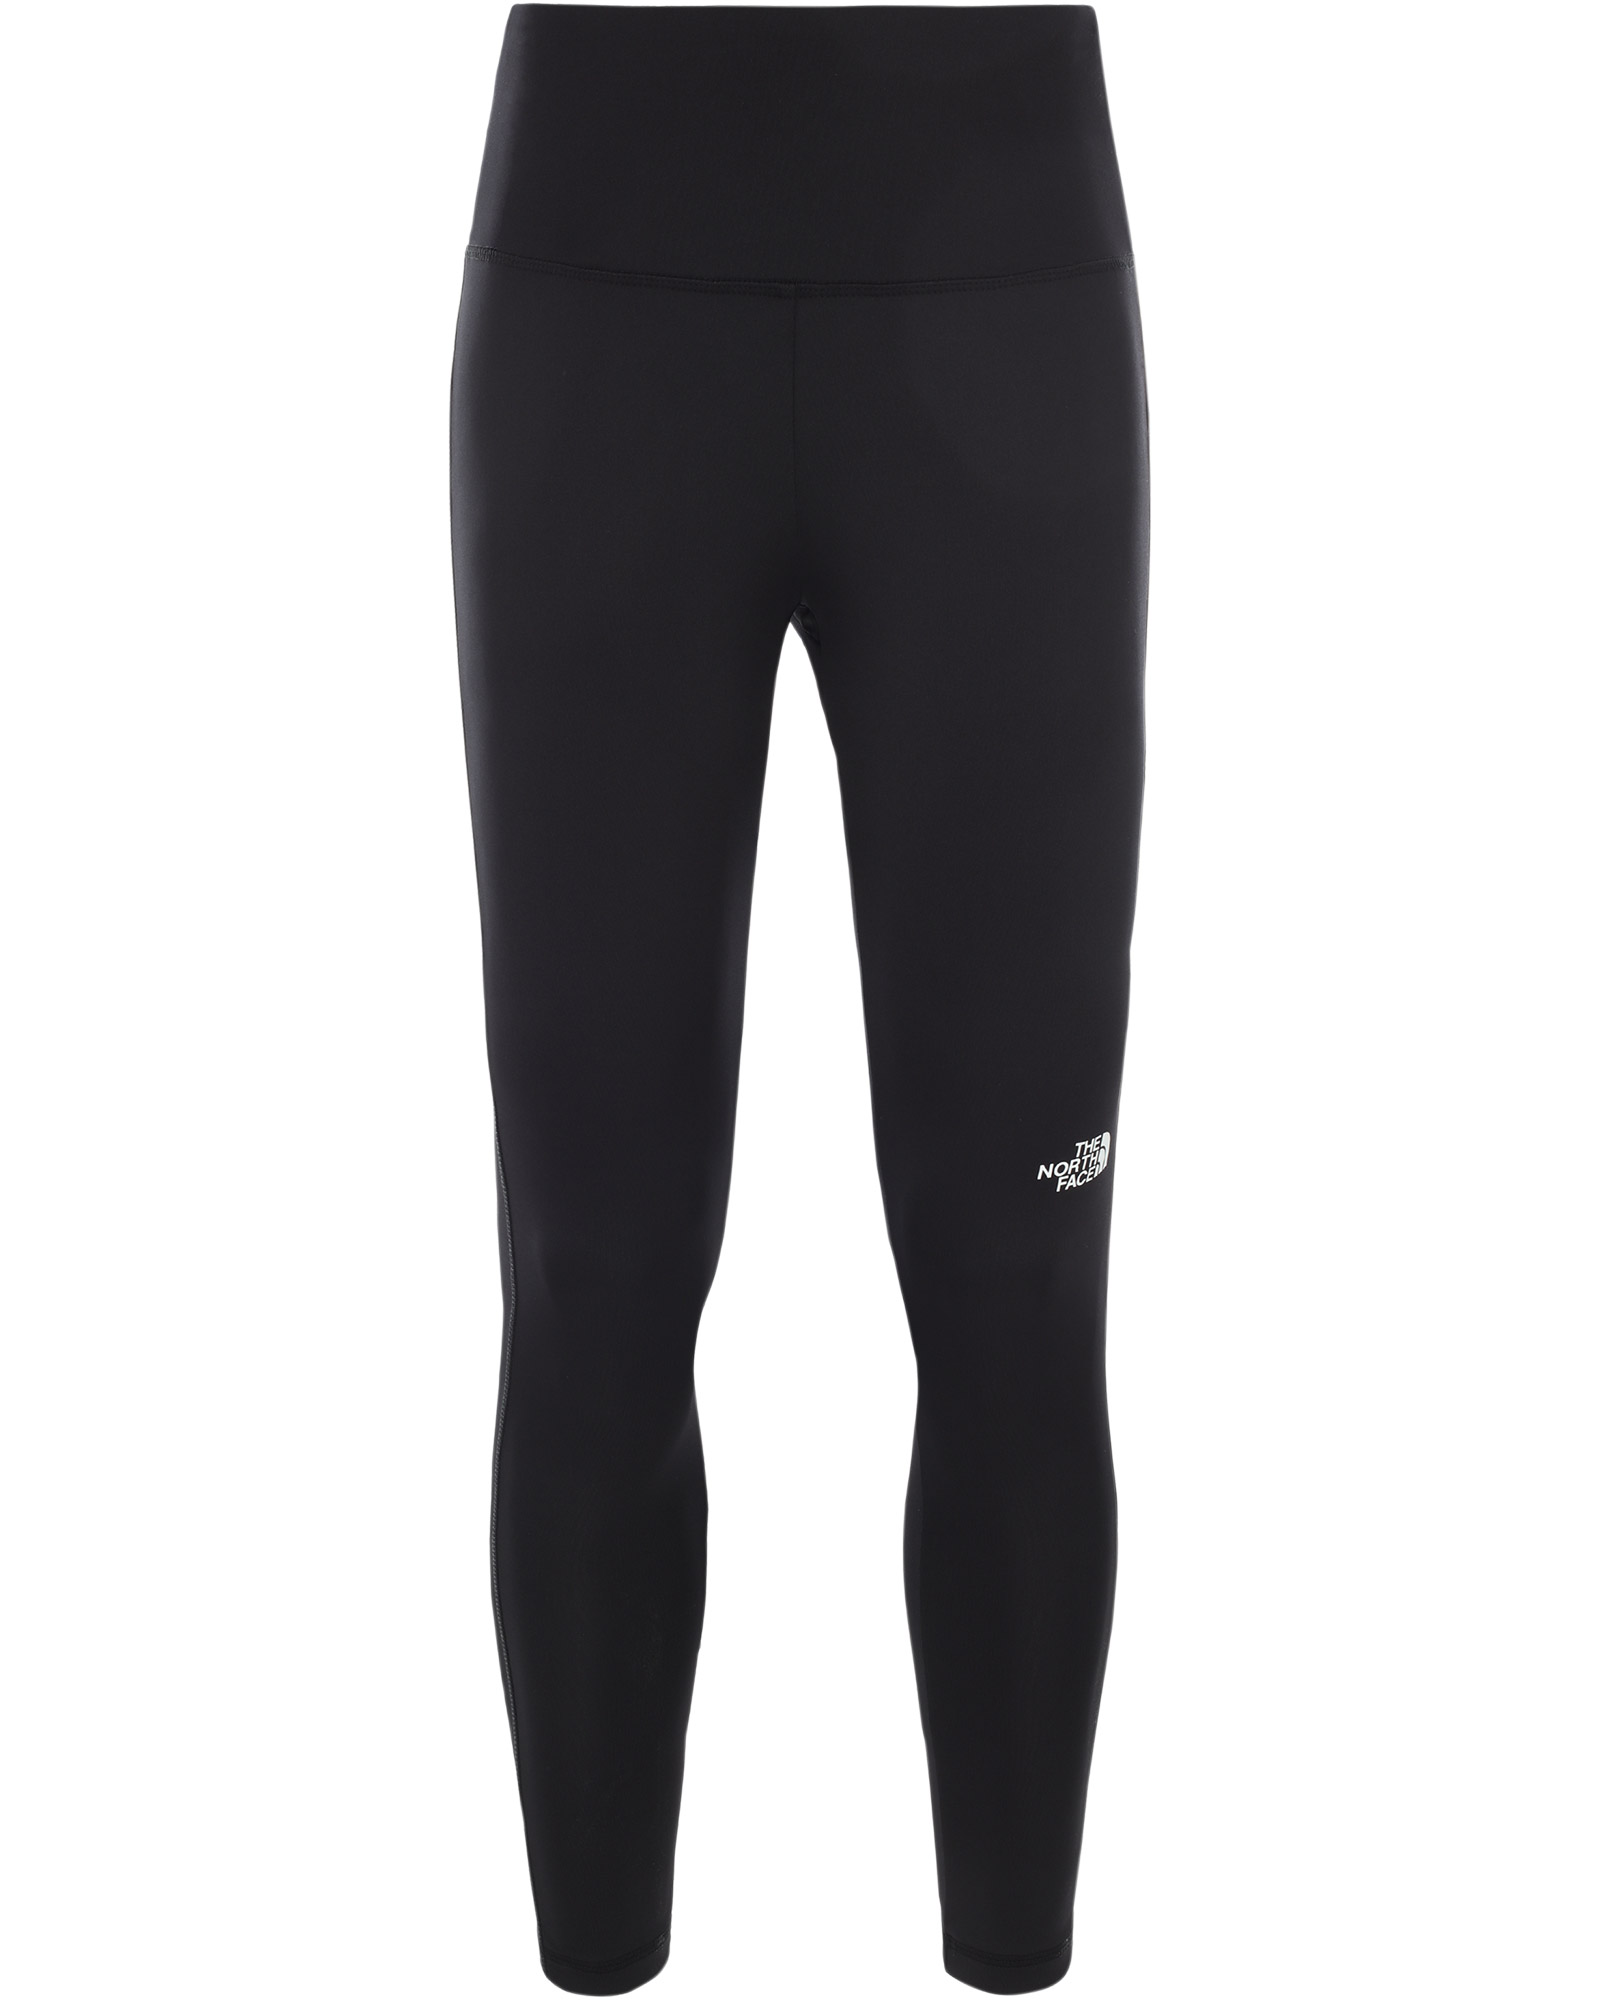 The North Face Women's New Flex High Rise 7/8 Tights 0